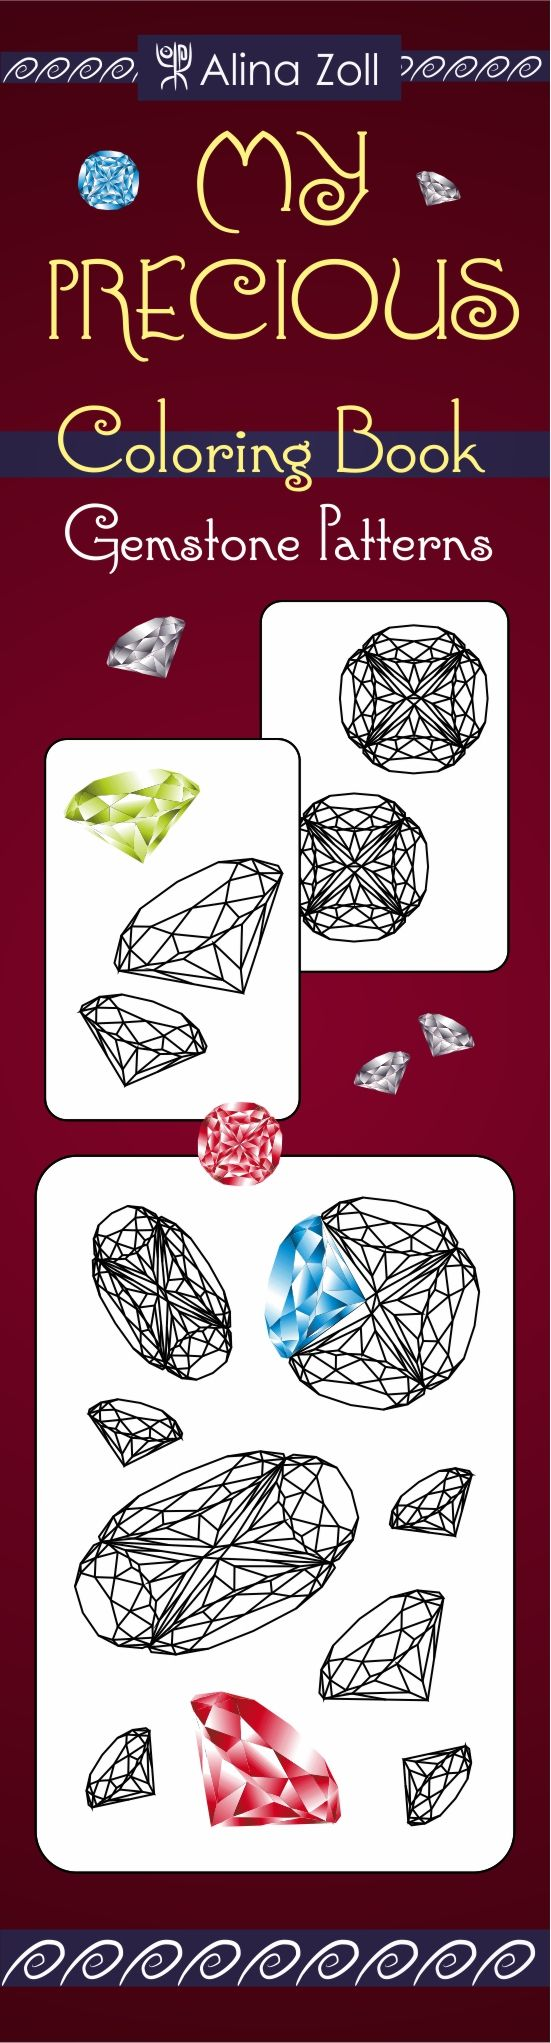 Adult coloring pages, gemstone patterns, diamond drawing pattern. This coloring book also contains gemstone coloring guide. DIY crystal diamond drawing, realistic gemstone drawing. 25 coloring templates, printable. #adult, #coloring, #book, #pages, #pdf, #printables, #tips, #techniques, #tutorials, #diamond, #drawing, #gemstone, #ideas, #easy, #simple, #crystals, #color